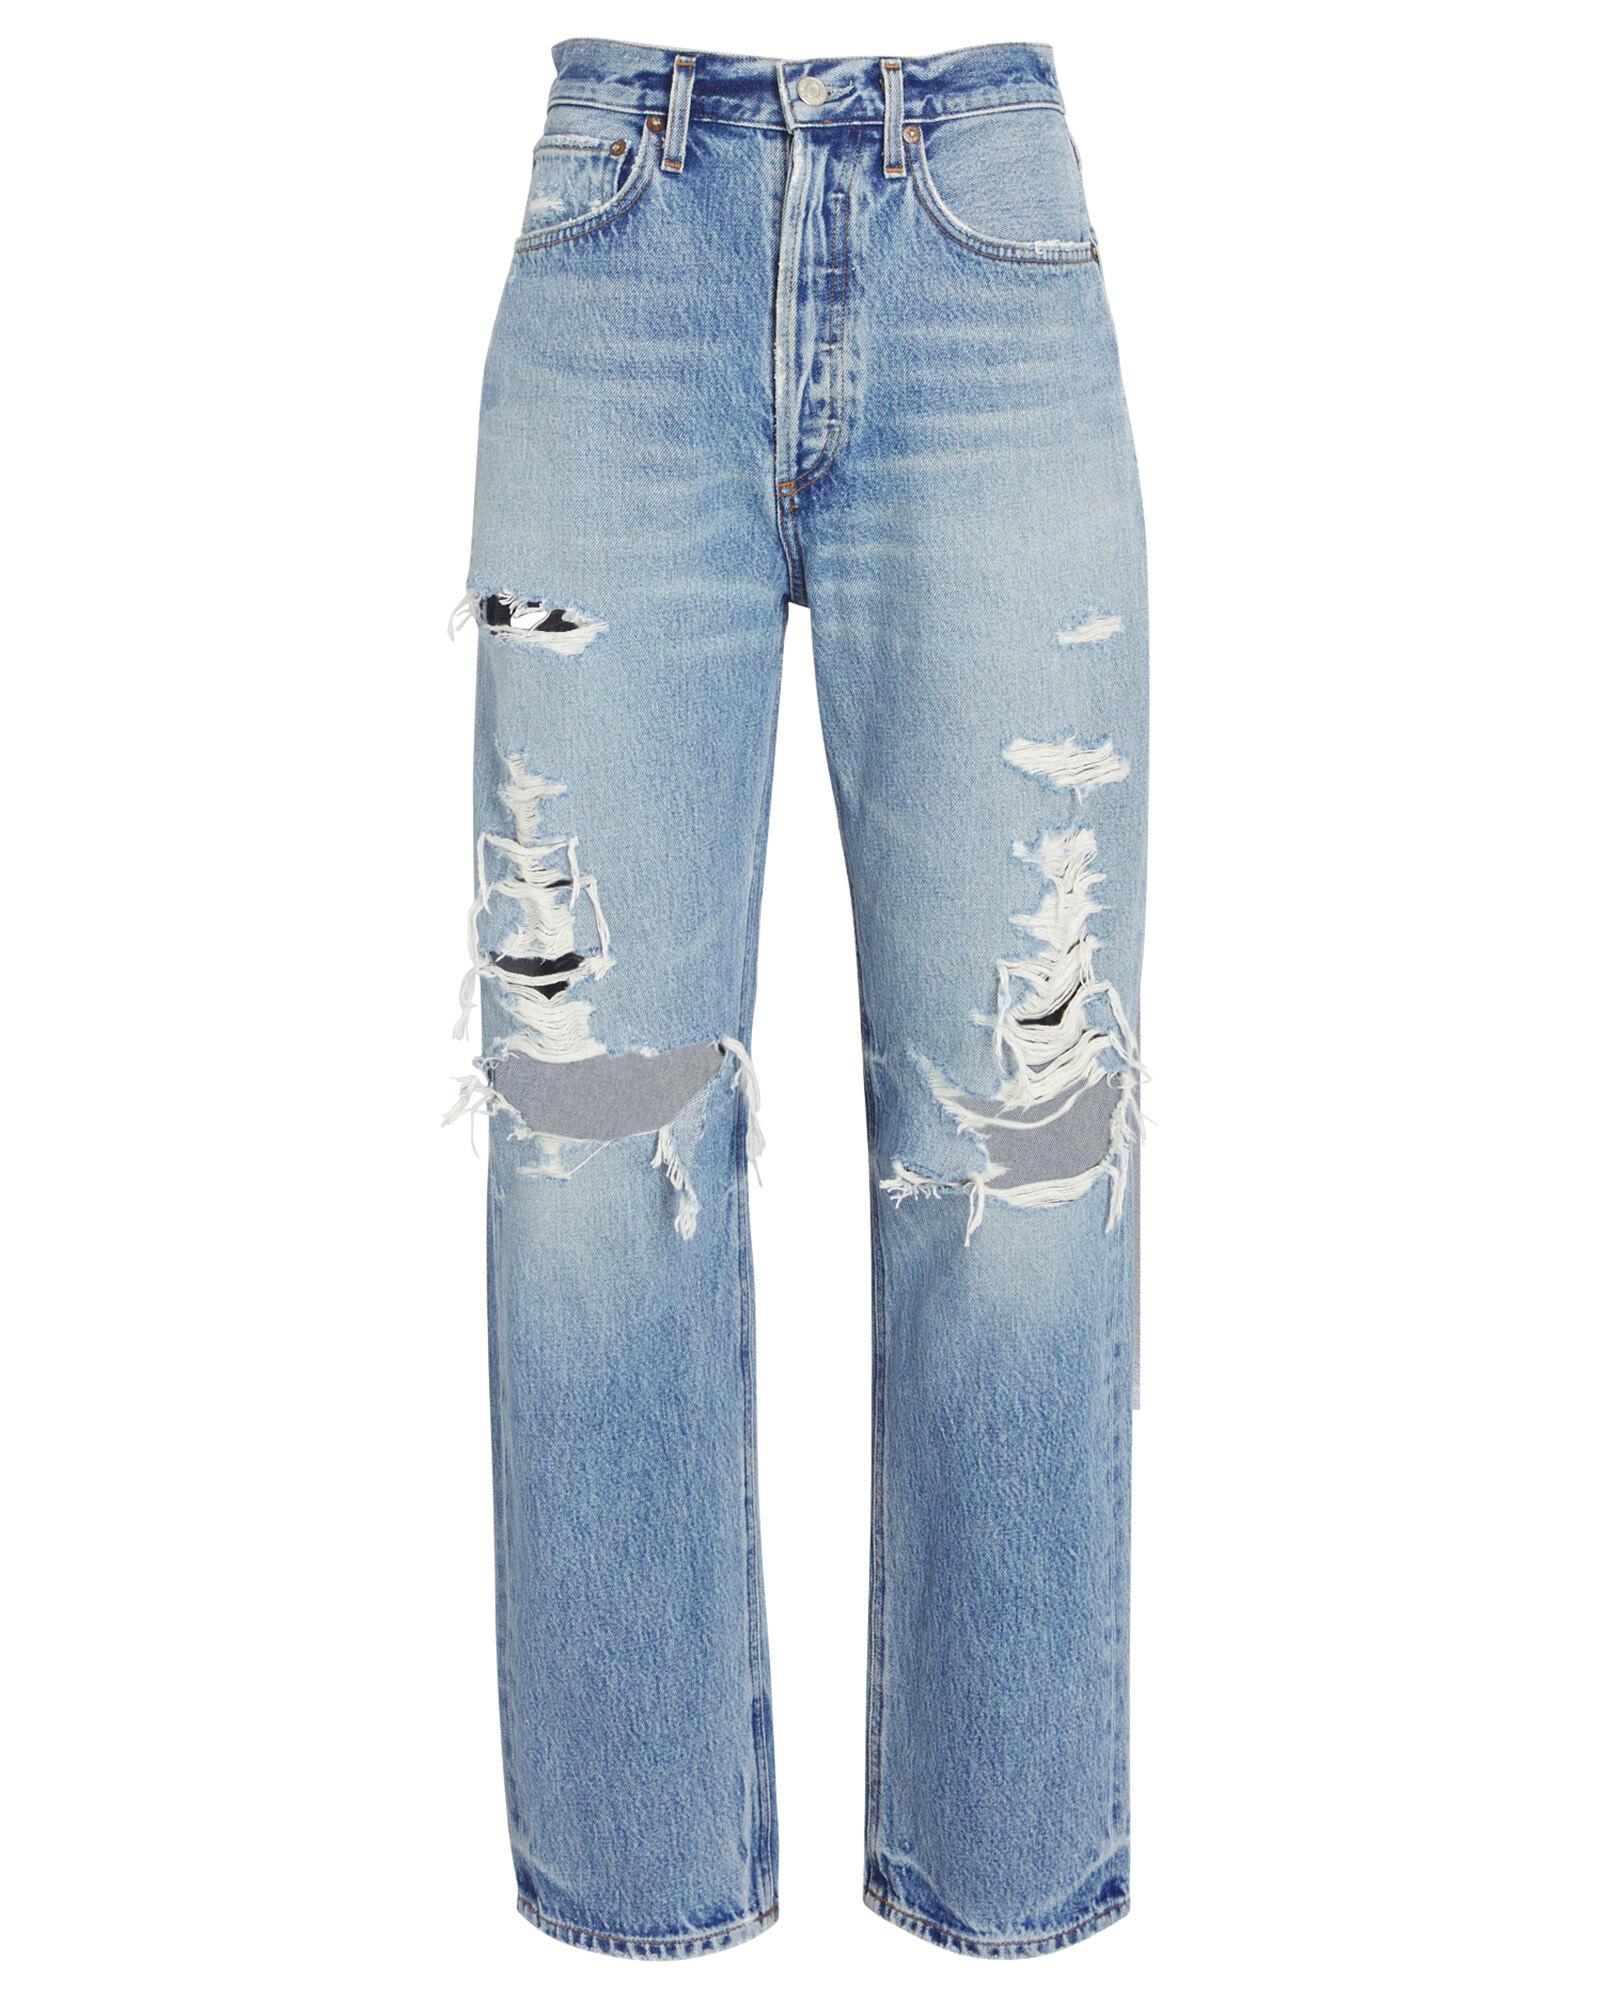 90s Loose Distressed Jeans, MAJOR, hi-res